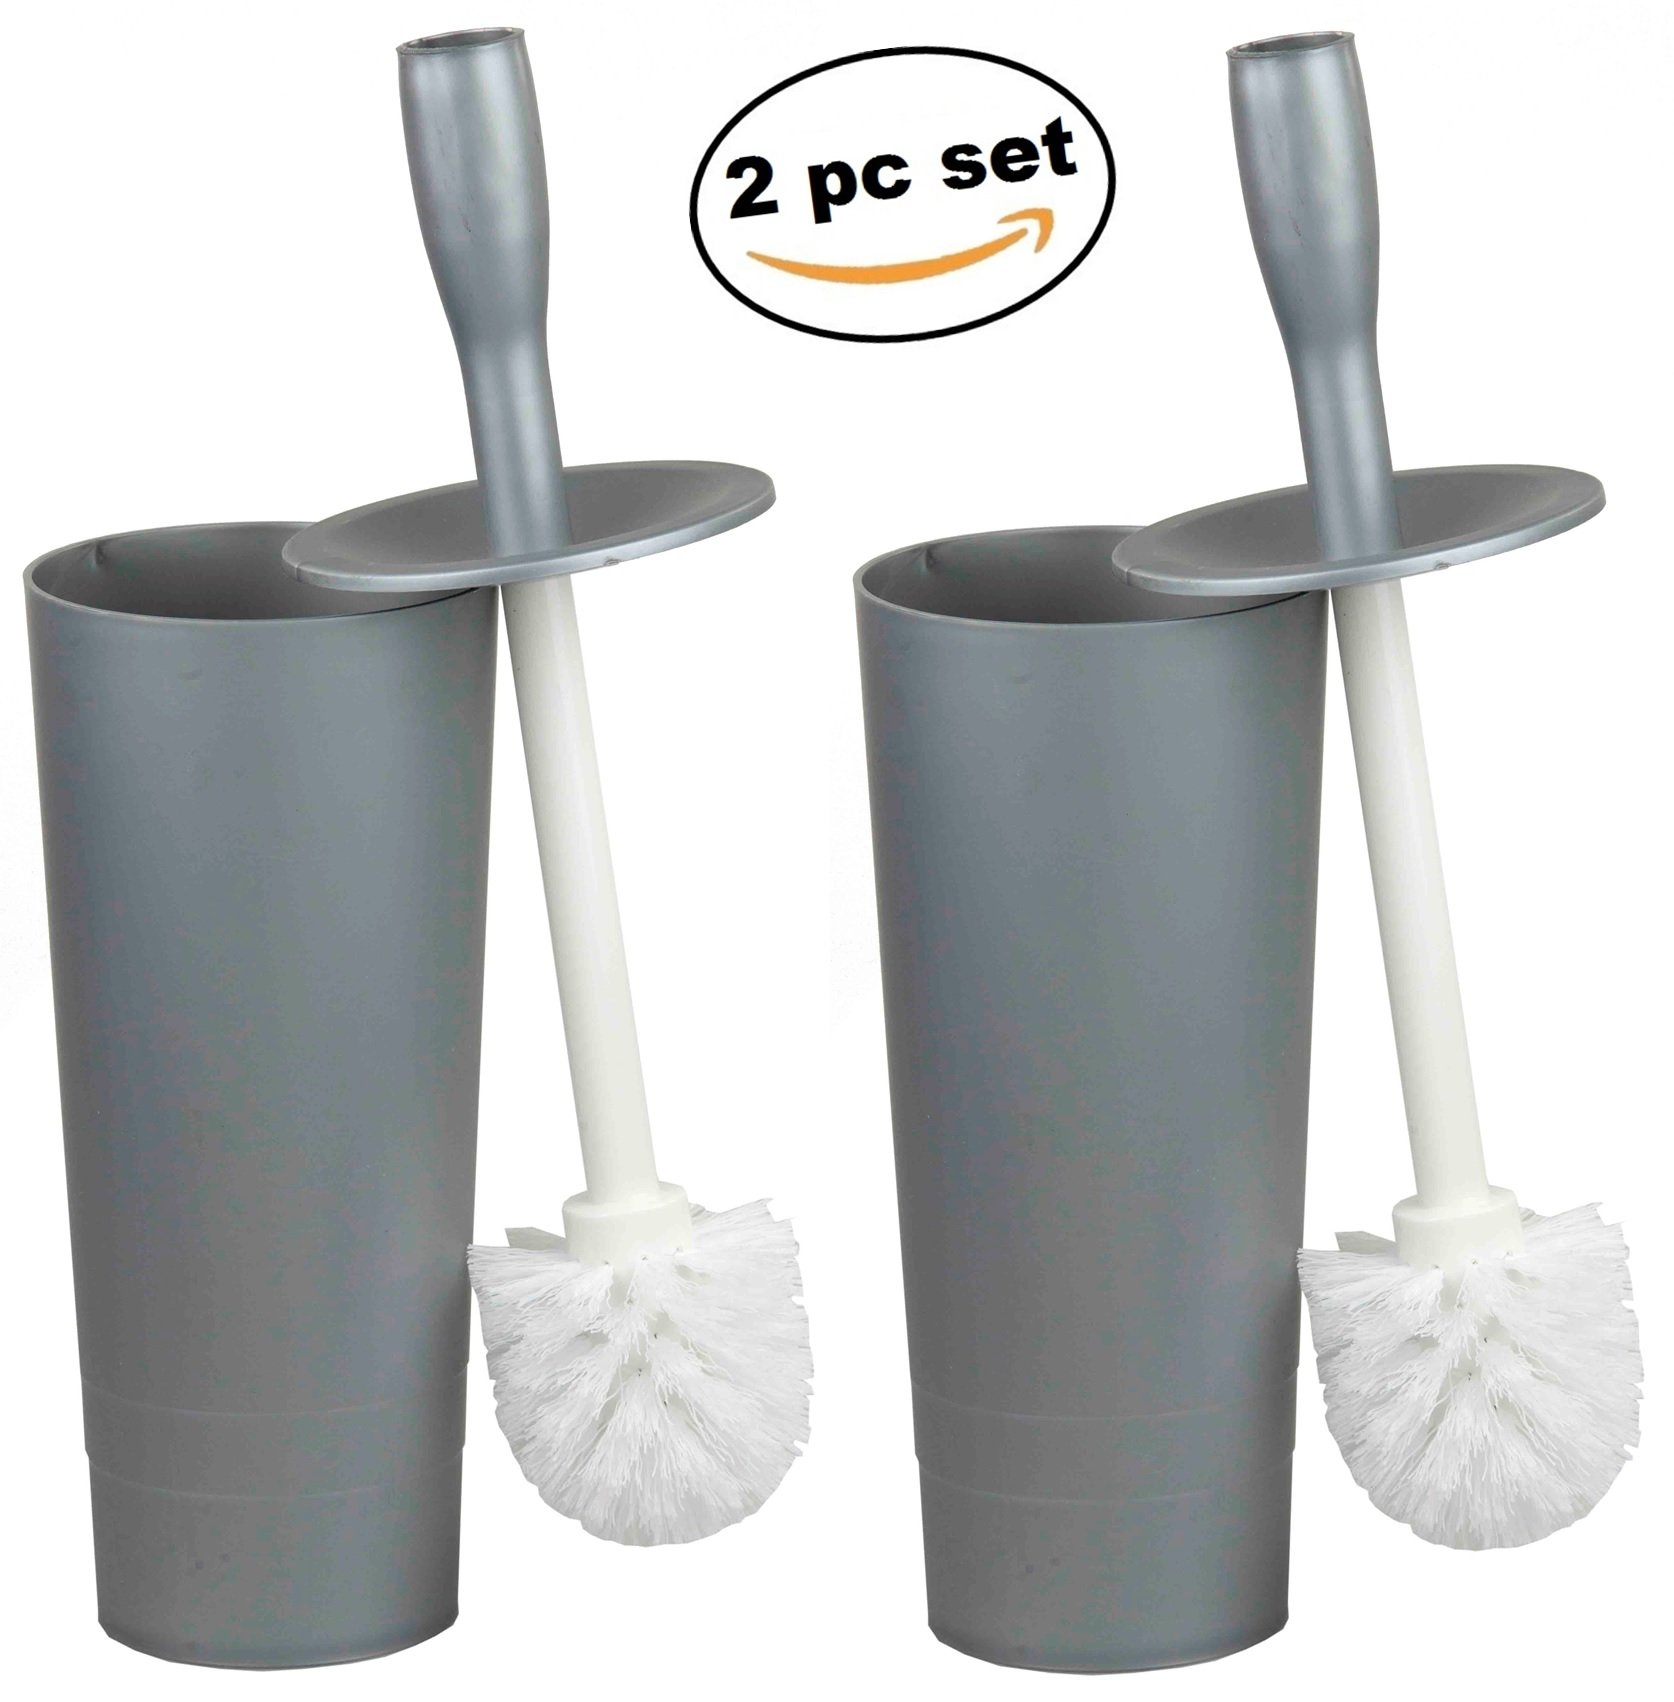 Deluxe 2pc Toilet Brush and Caddy with Lid Holder - 2 pc Set - Grey